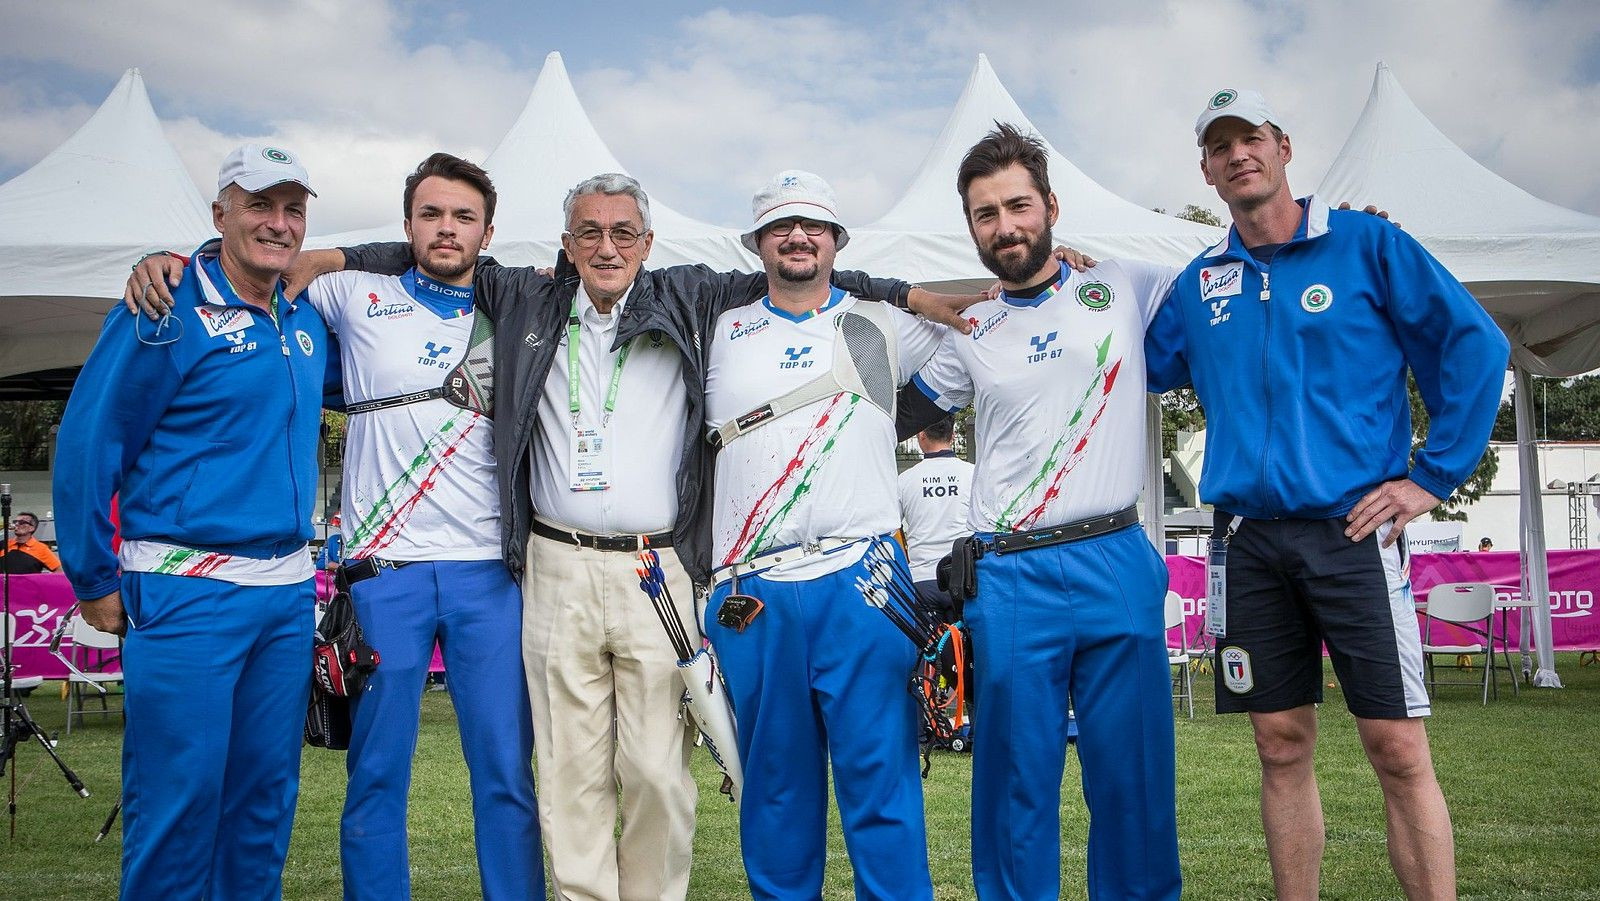 Italy, pictured, will play France in the men's team recurve final ©World Archery